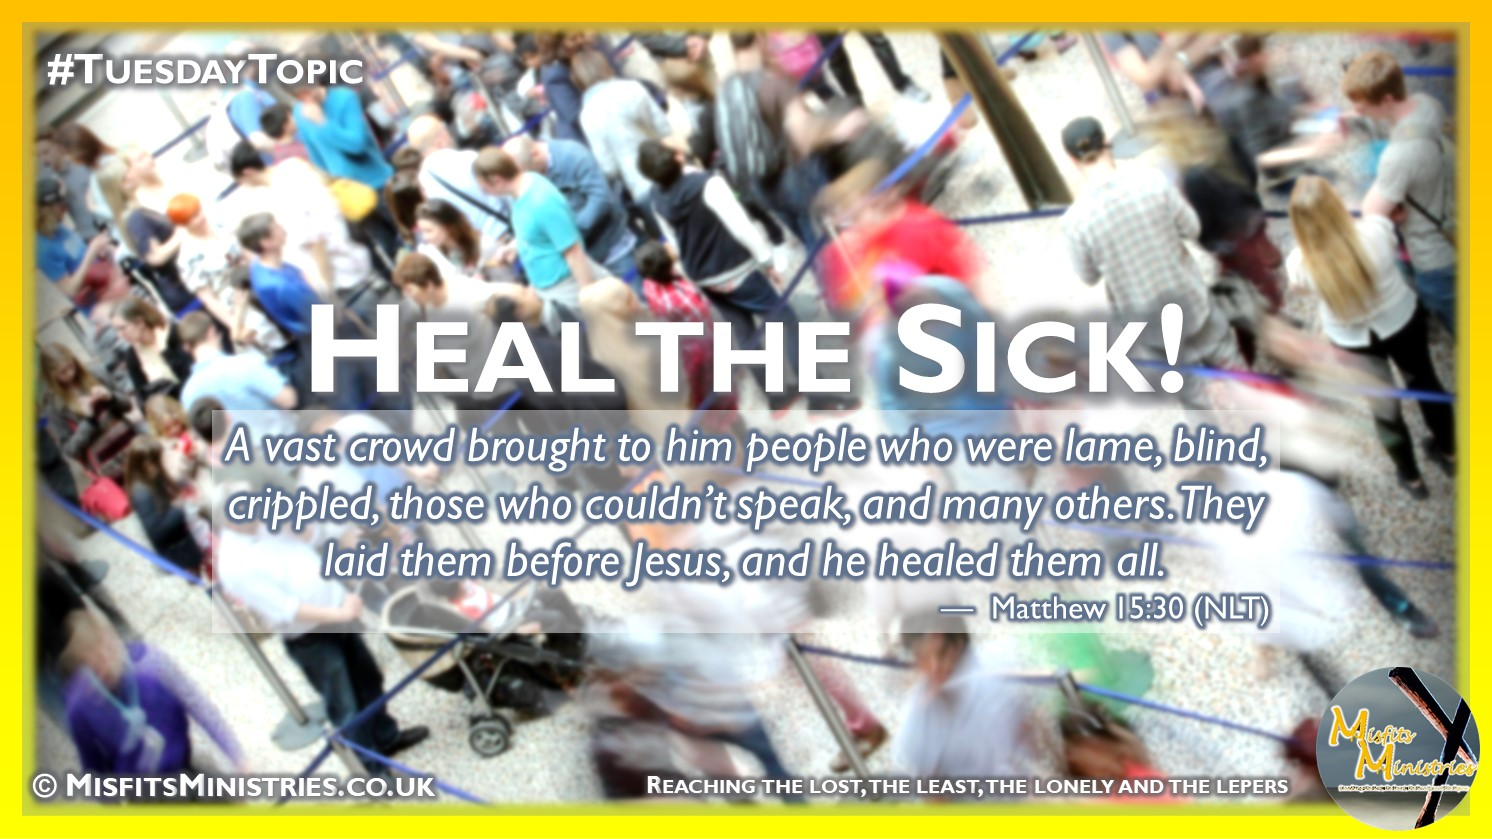 Tuesday Topic 2021wk31 - Heal the sick